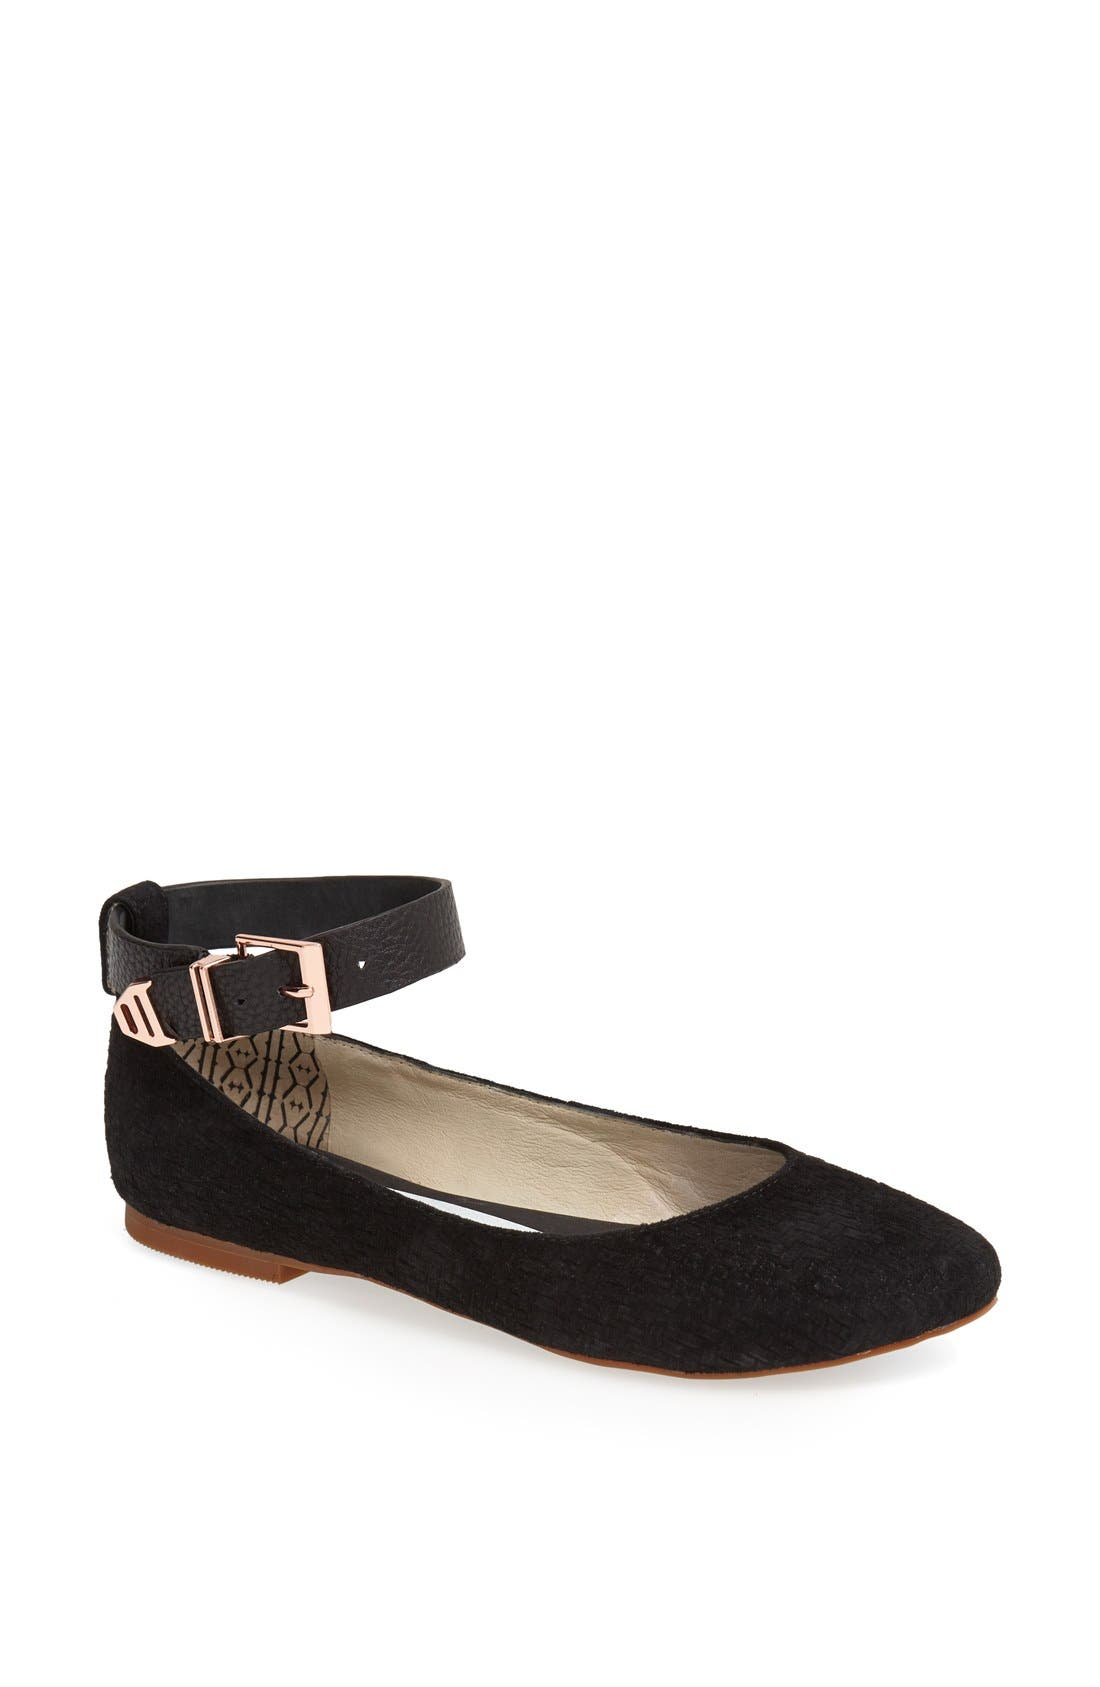 Main Image - Matt Bernson 'Major' Ankle Strap Flat